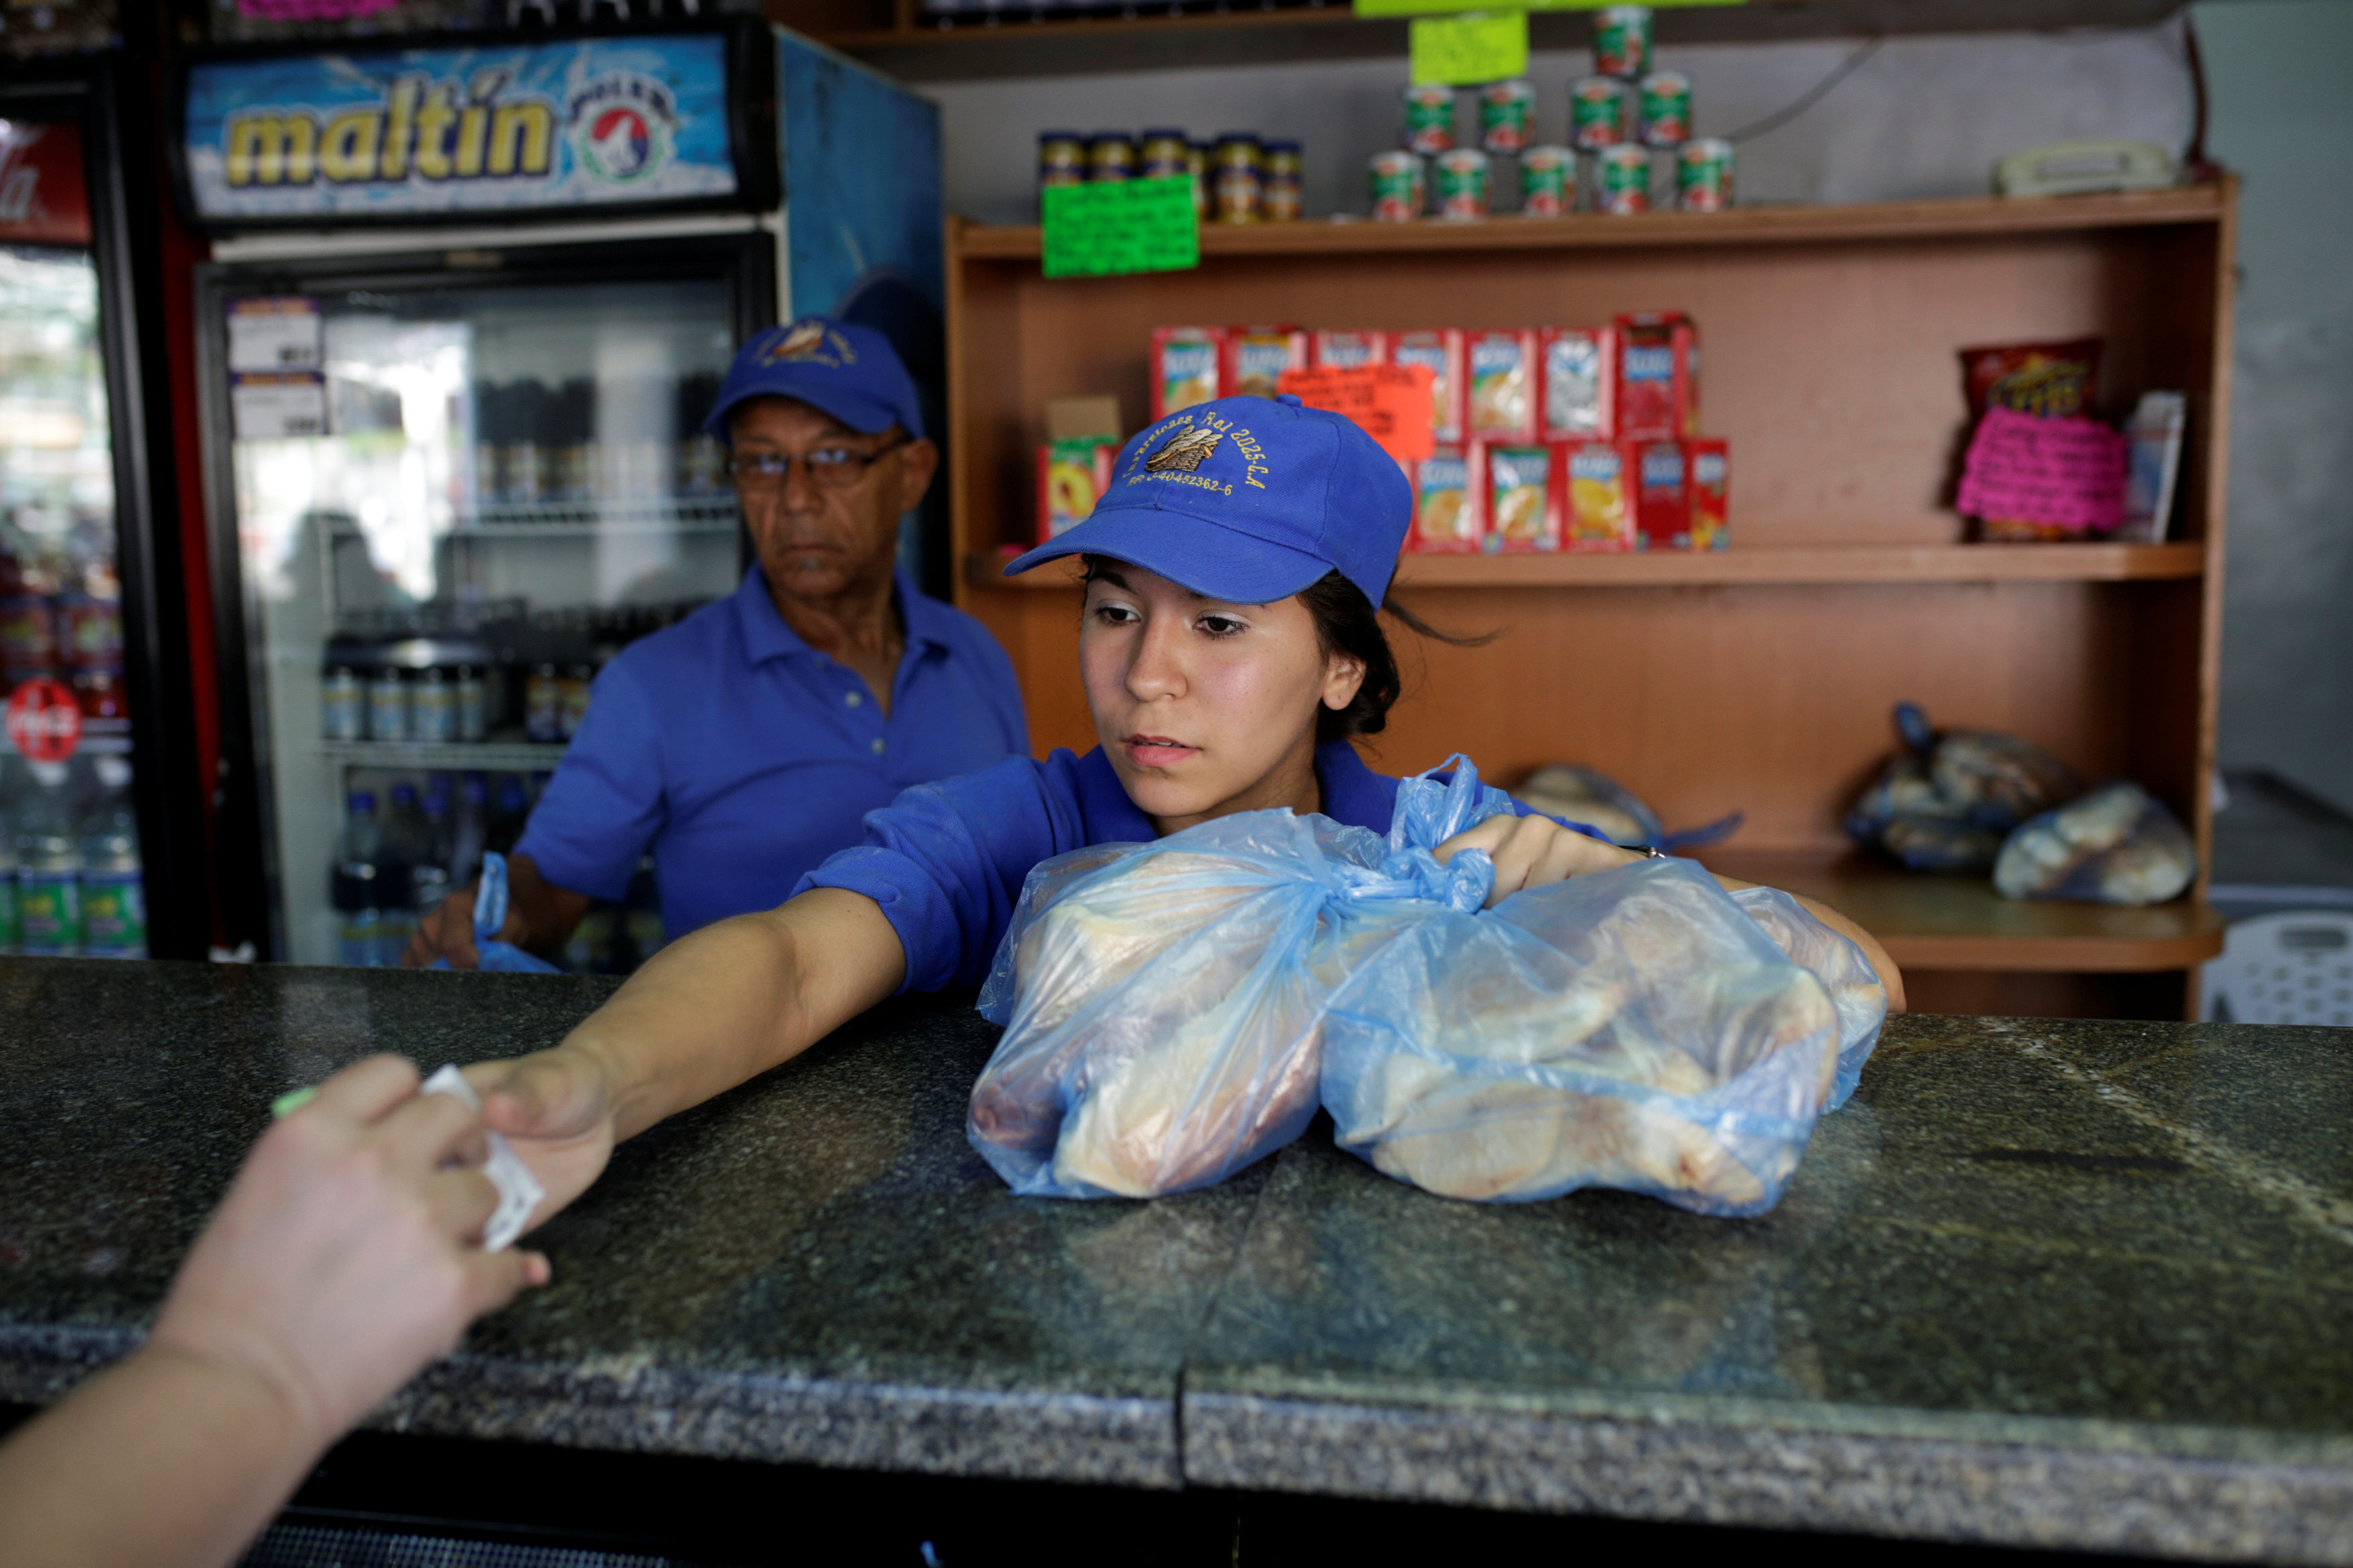 A saleswoman sells bread at a bakery in Caracas, Venezuela on March 17, 2017. (REUTERS/Marco Bello)